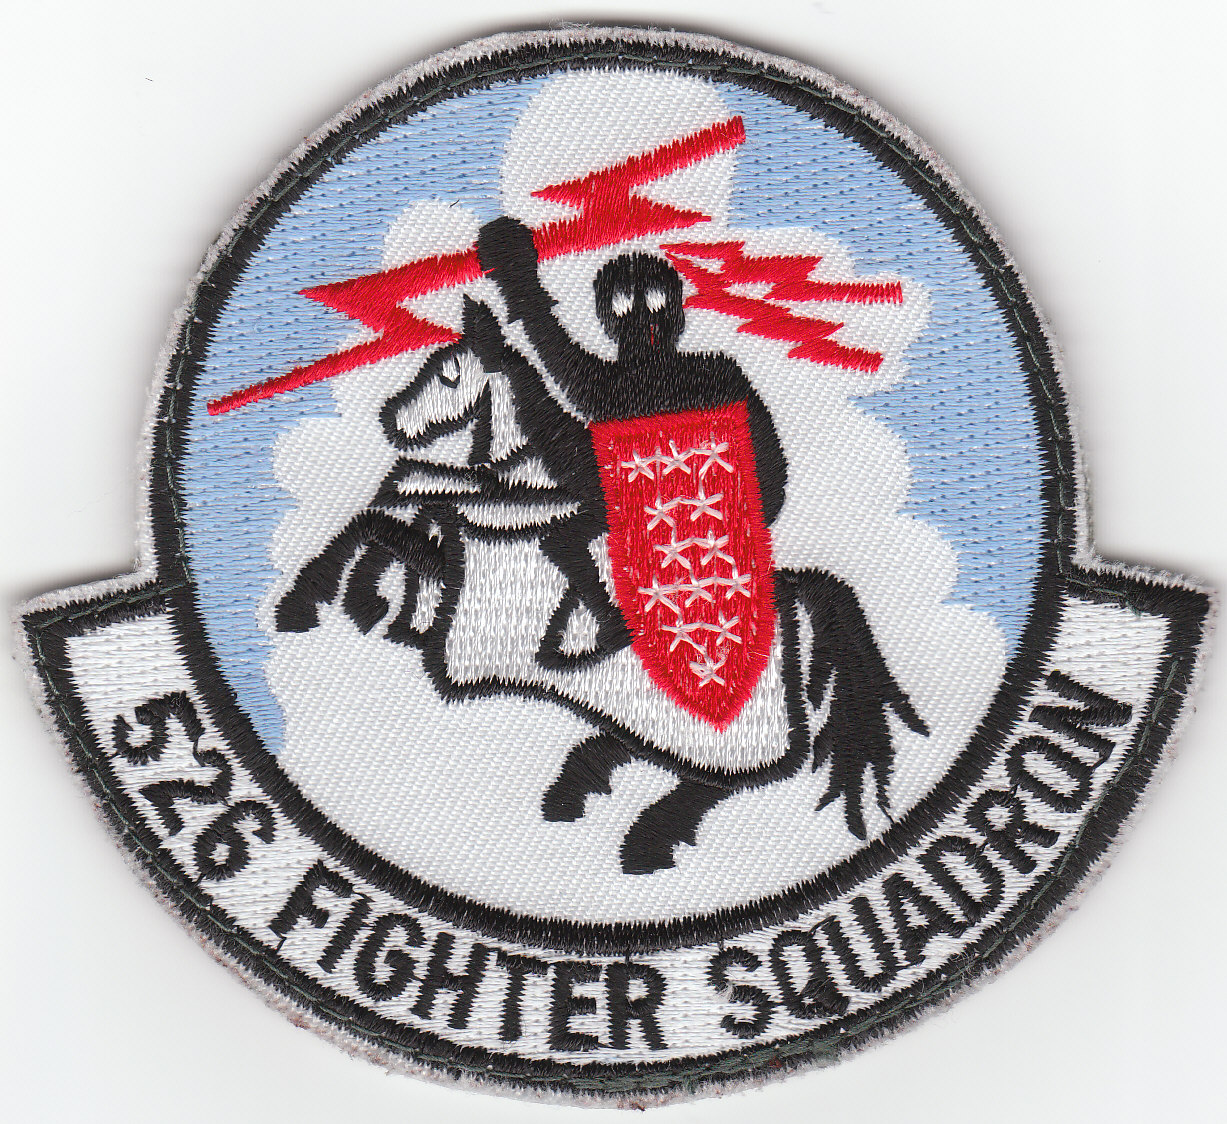 Fighter Squadron Logos The 526th Fighter Squadron